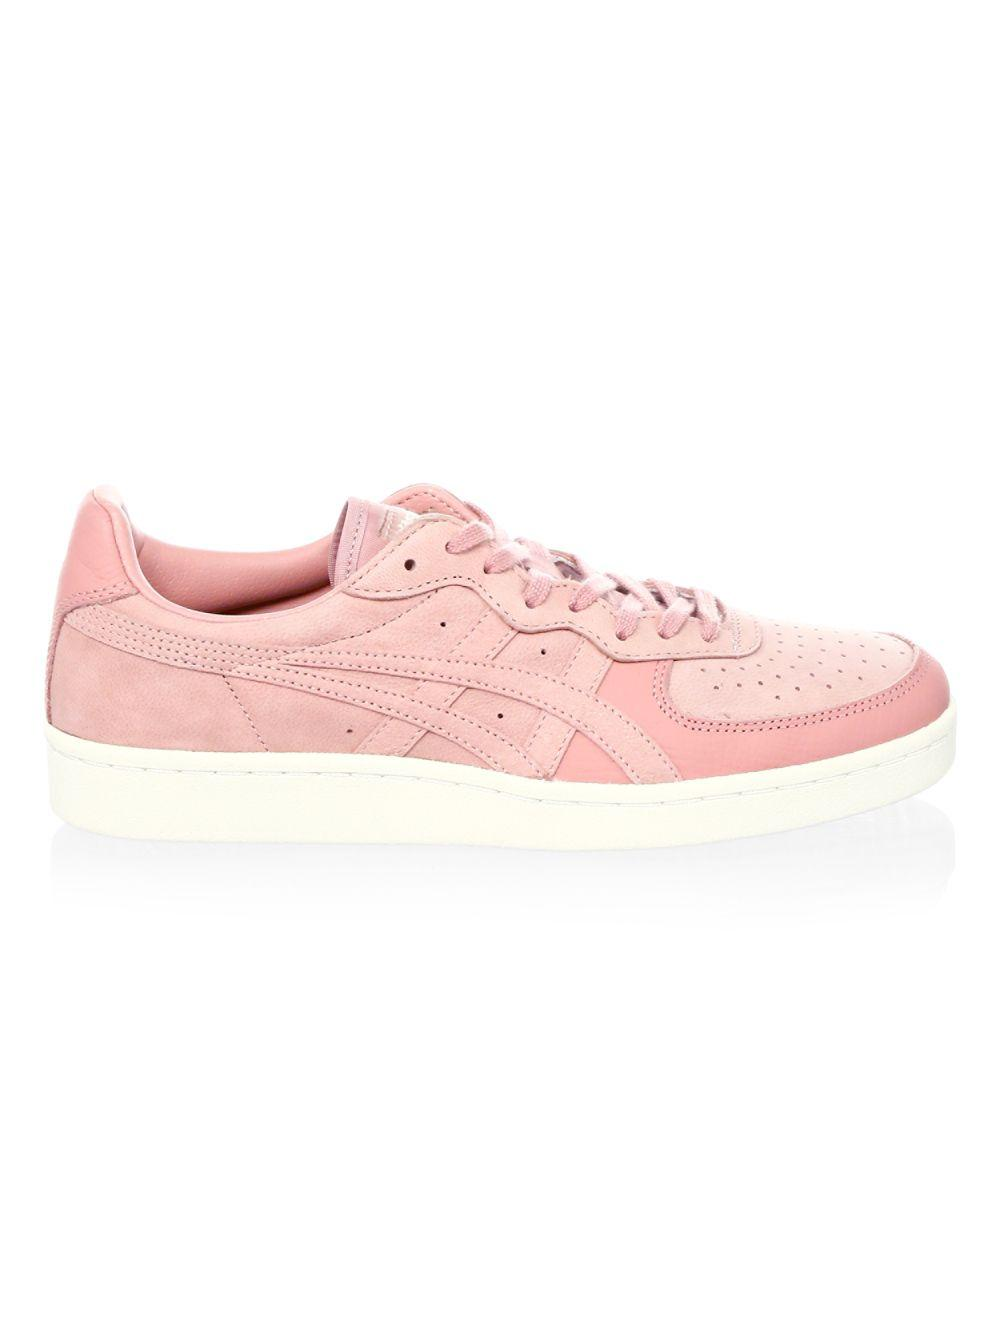 best service 598d8 a22dc Onitsuka Tiger Gsm Low-top Suede Sneakers in Pink for Men - Lyst